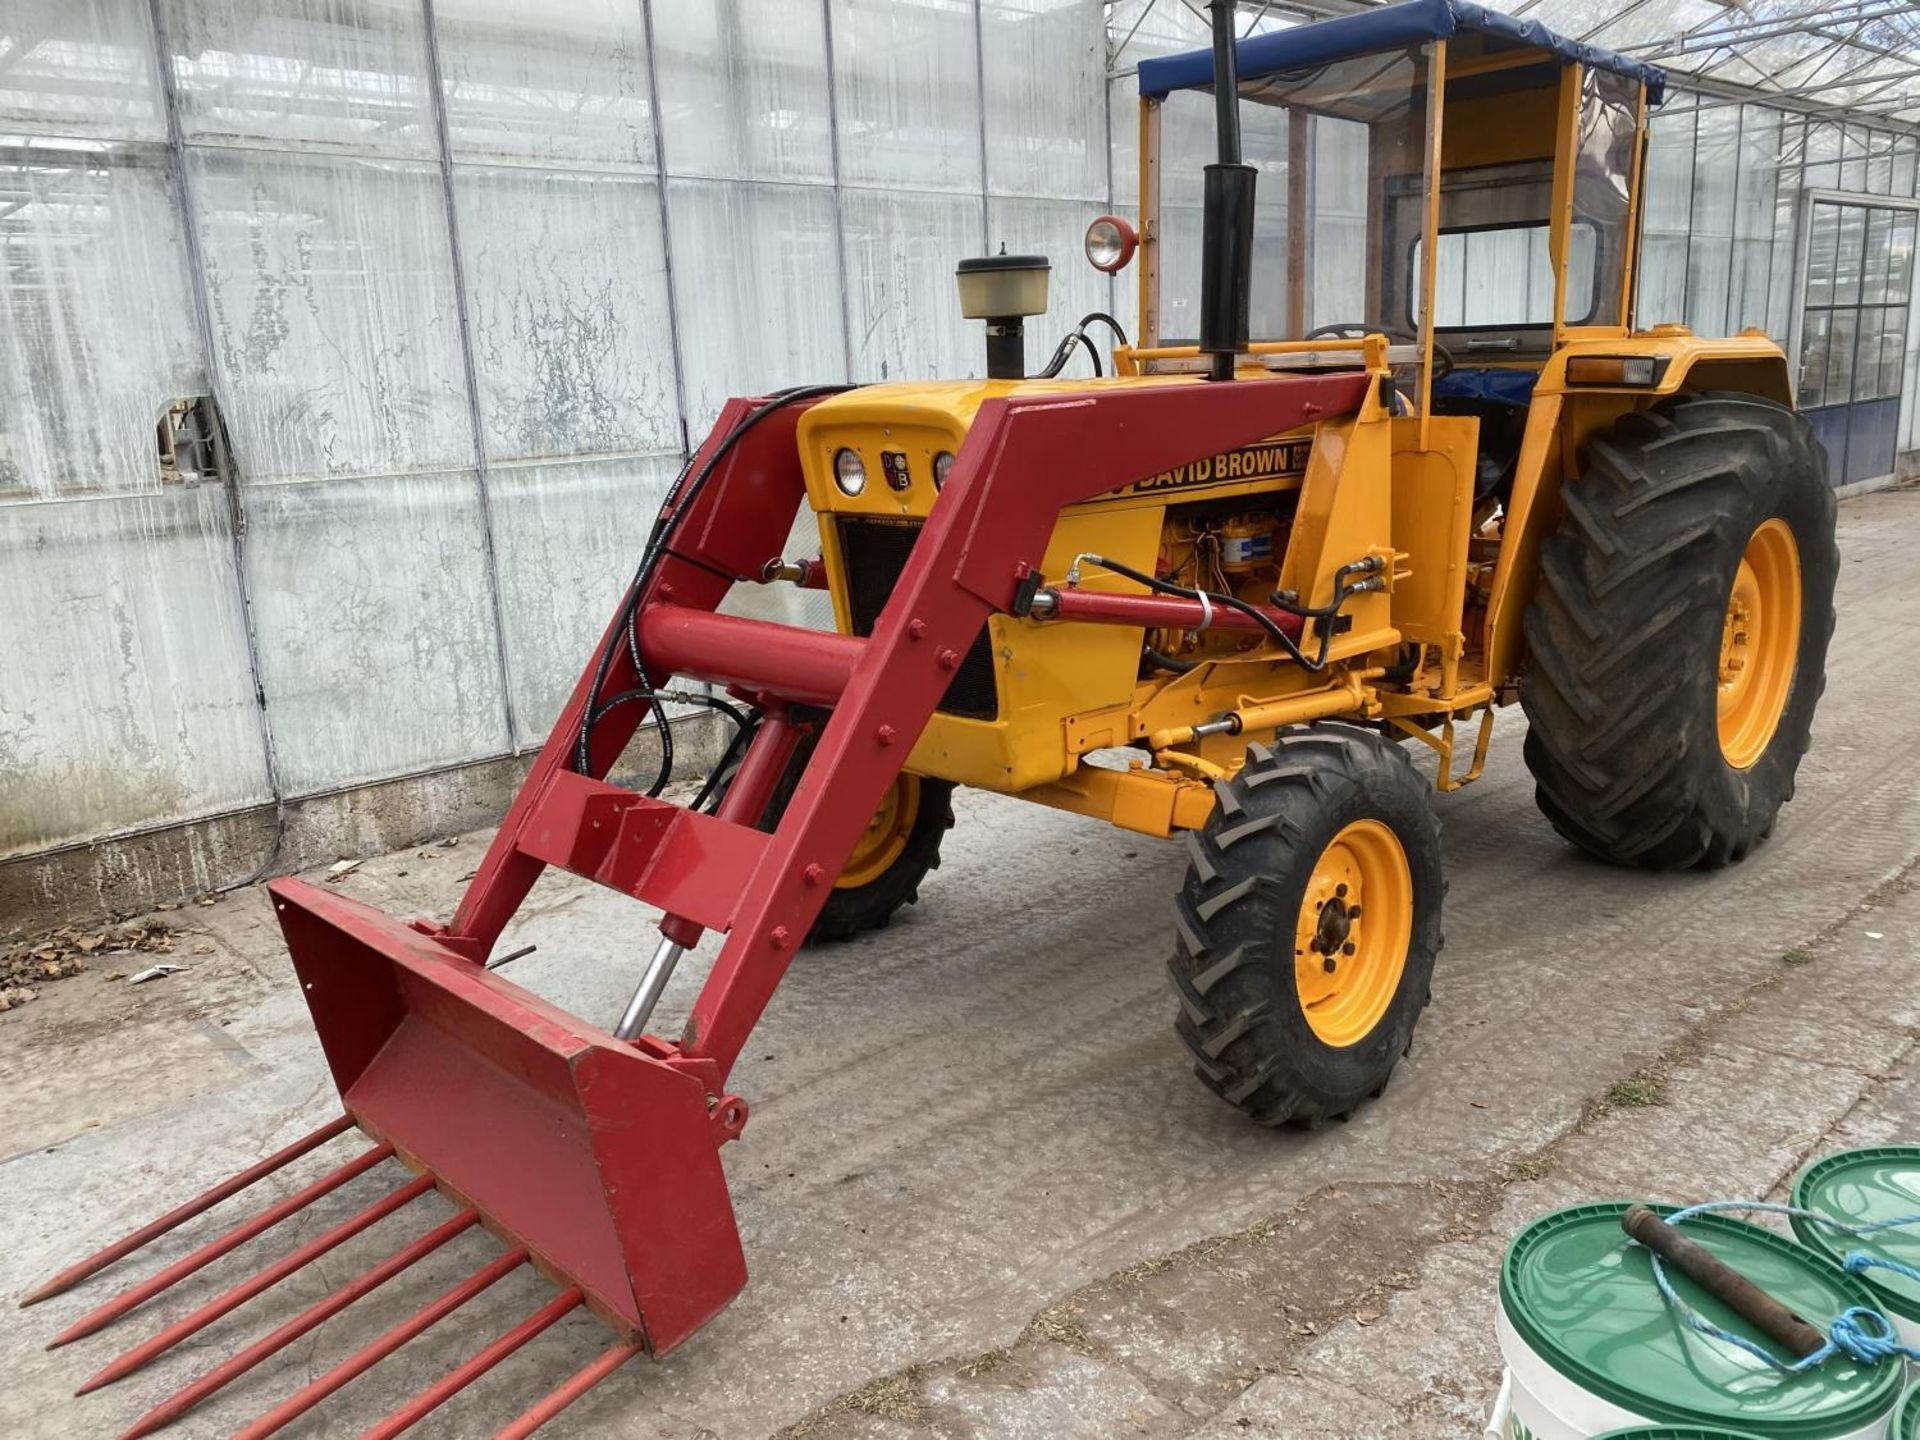 A DAVID BROWN 995 TRACTOR WITH FORE END LOADER AND MANURE FORK 3779 HOURS - Image 10 of 11